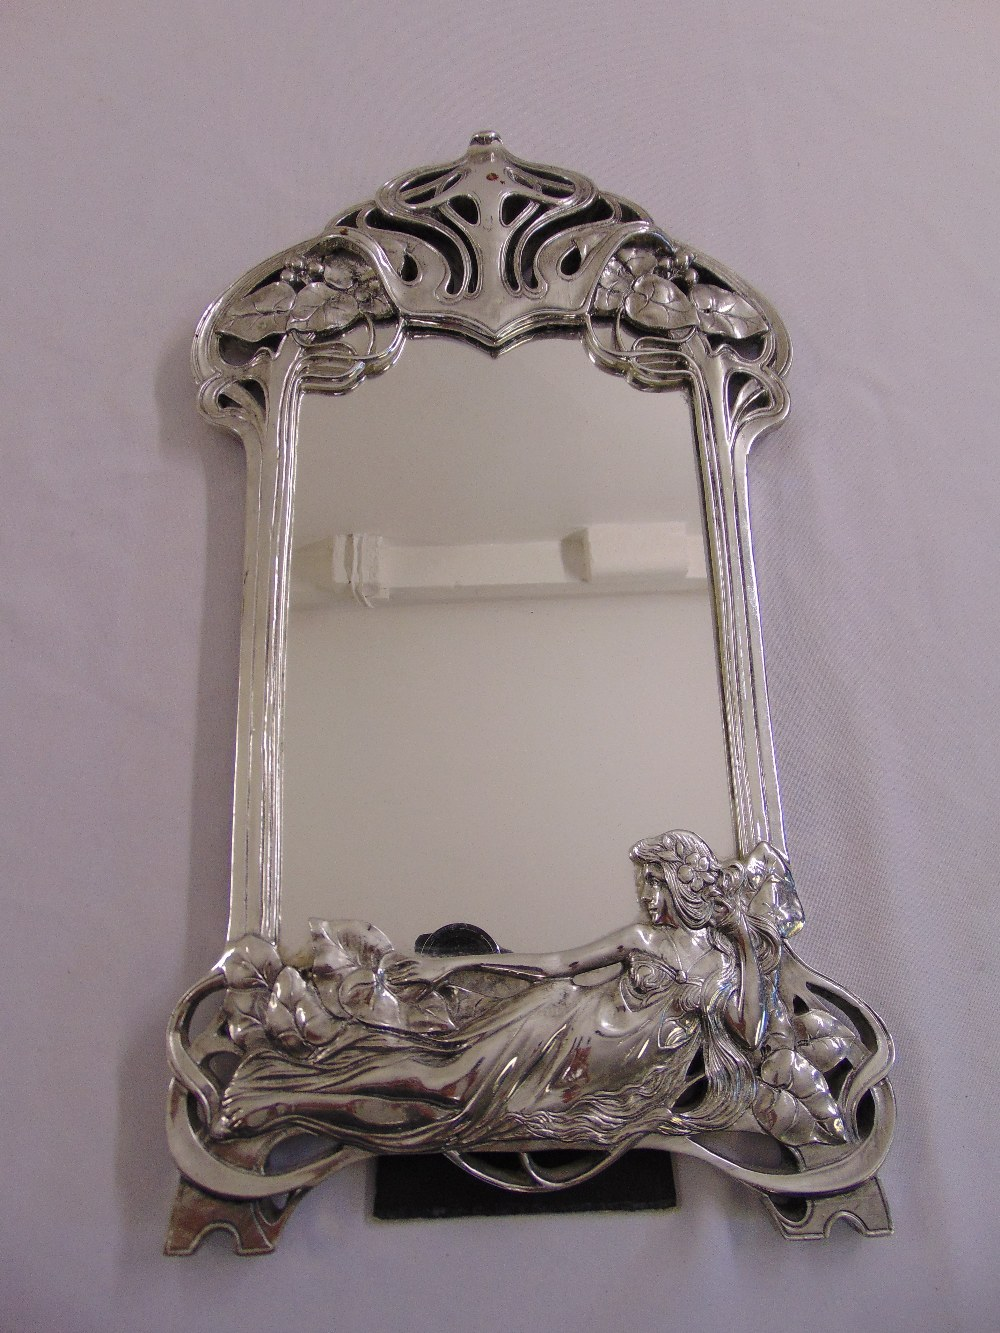 Lot 44 - A silvered Art Nouveau style table mirror shaped rectangular with stylised vegetation and a